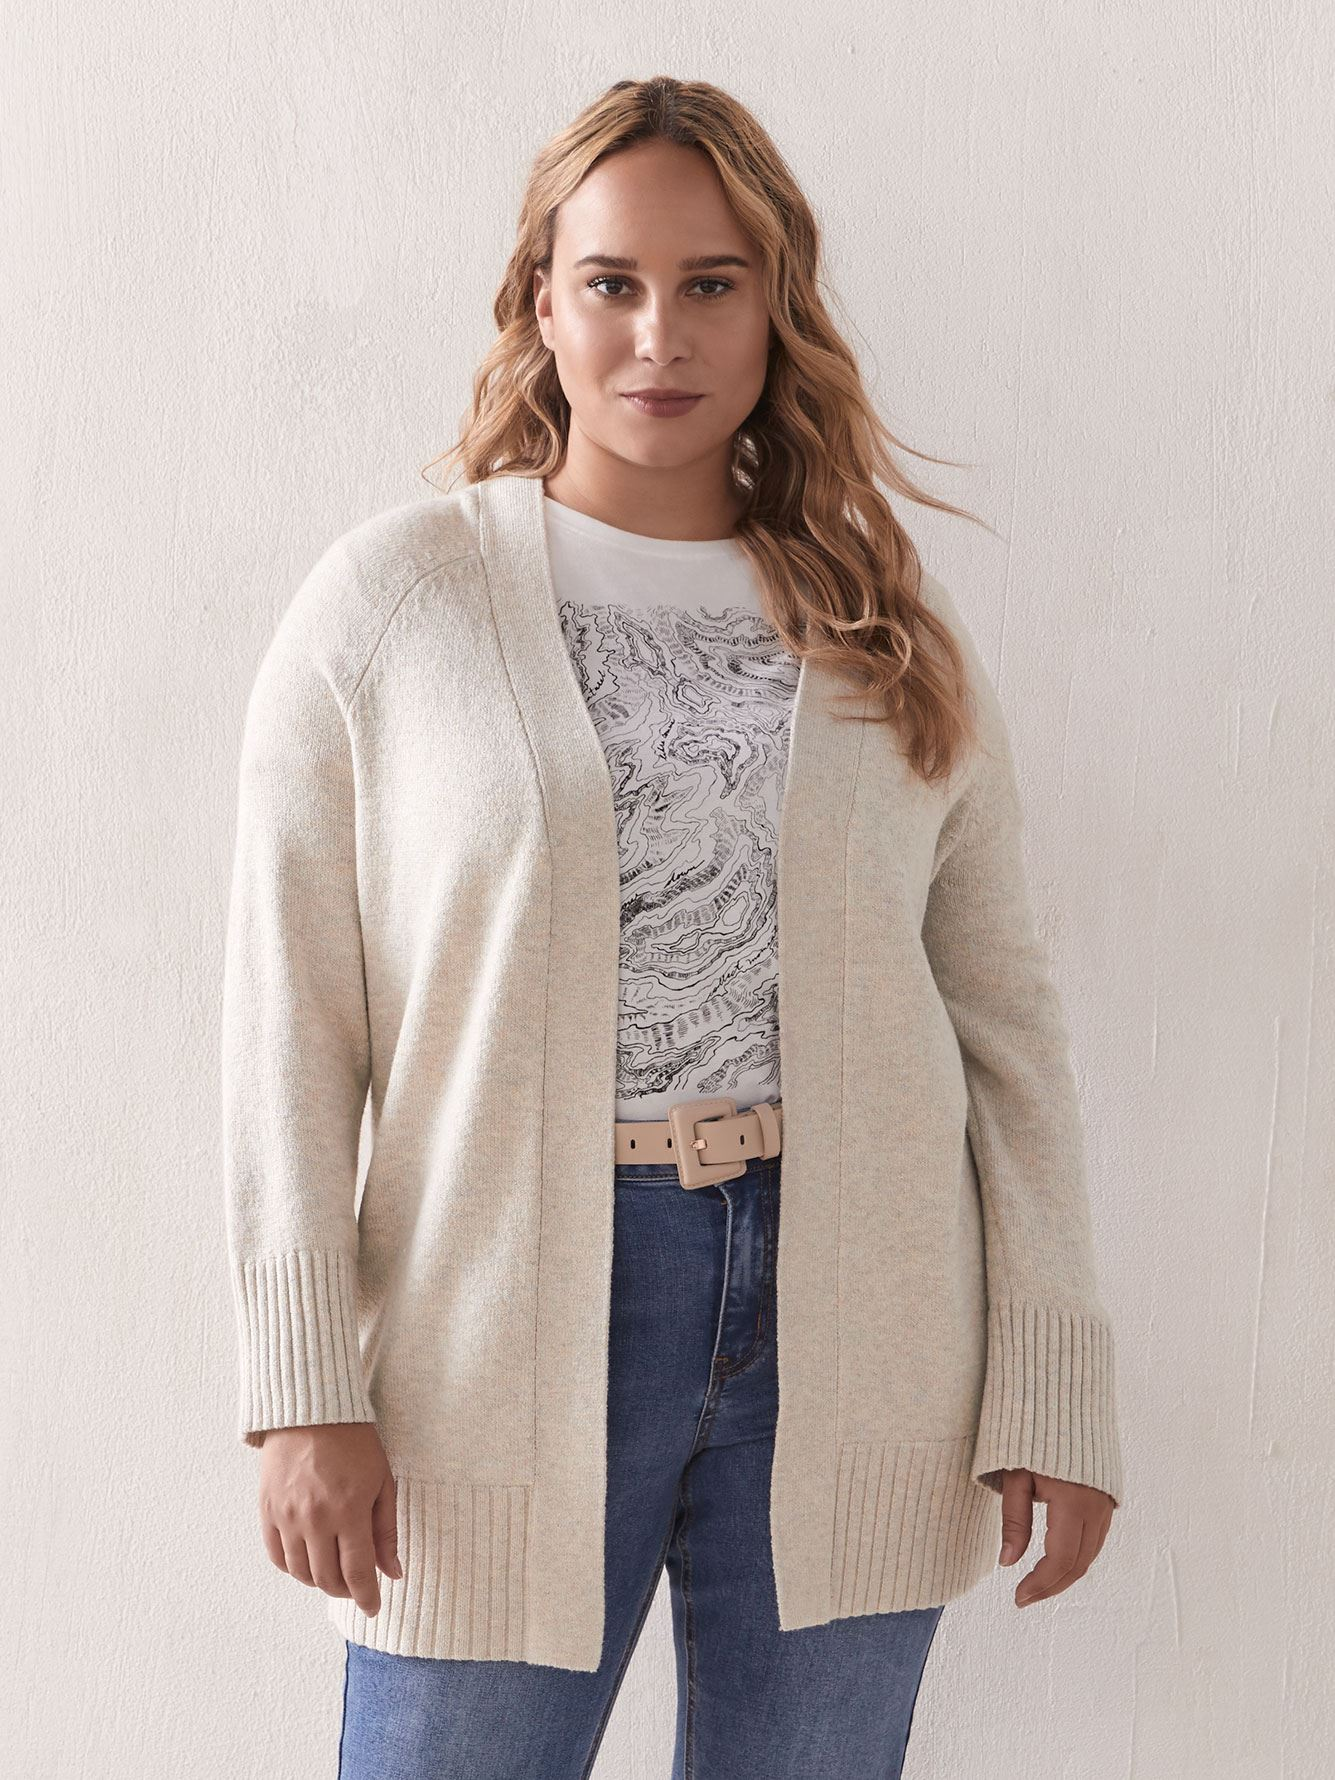 Pointelle Stitch Edge to Edge Cardigan - Addition Elle